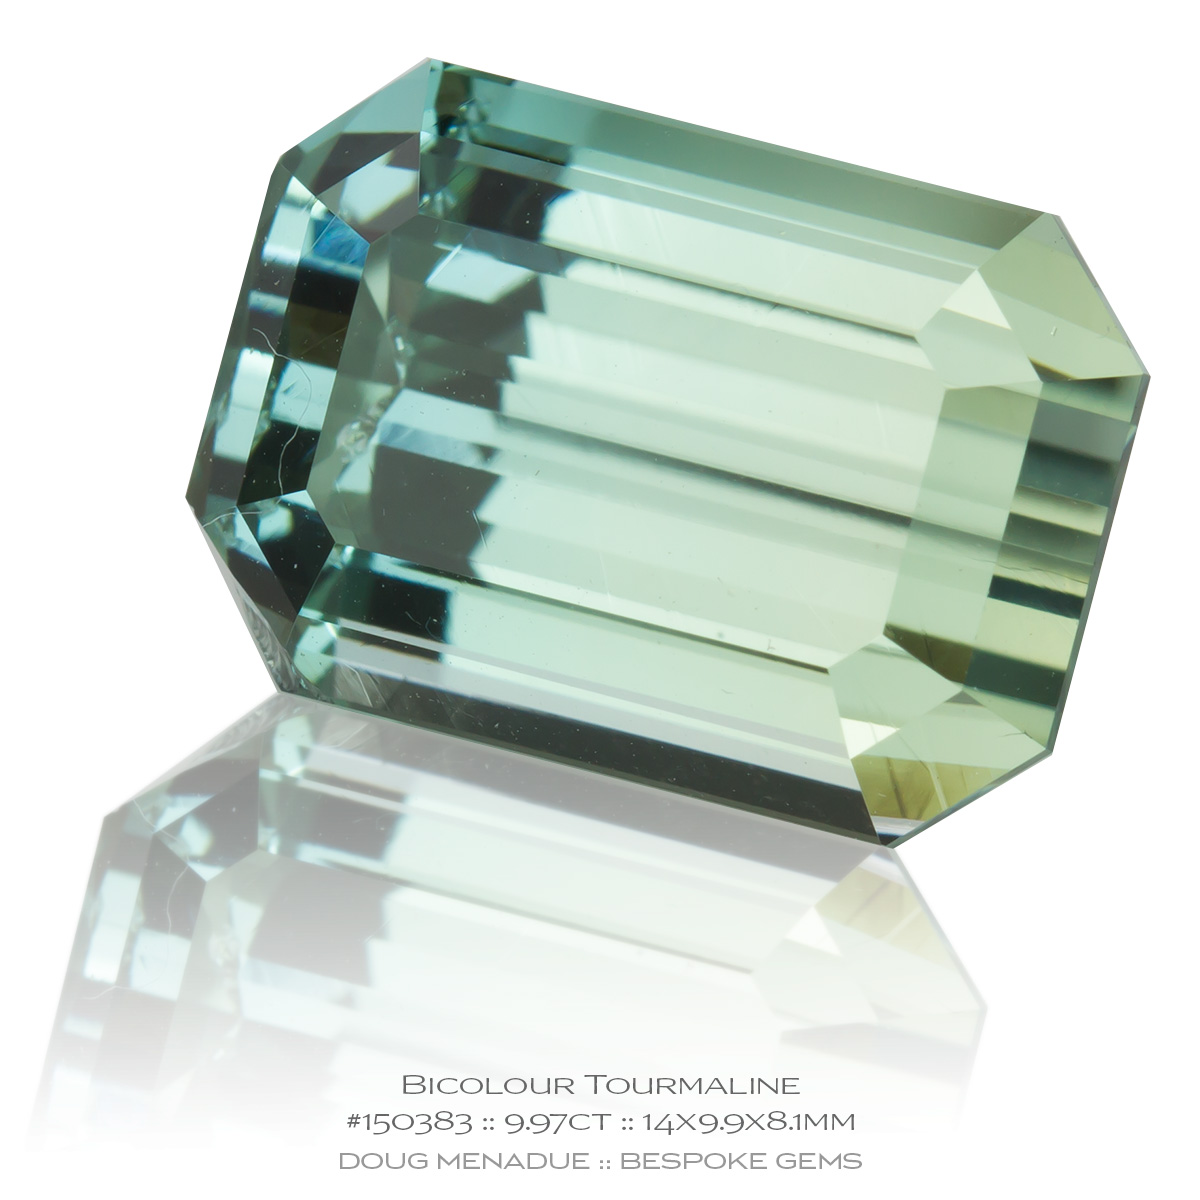 #150383, Bicolour Yellow Blue Tourmaline, Emerald Cut, 9.97 Carats, 13.16X13.11X10.41mm - Doug Menadue :: Bespoke Gems - WWW.BESPOKE-GEMS.COM - Precision Gemcutting and Lapidary Services In Sydney Australia